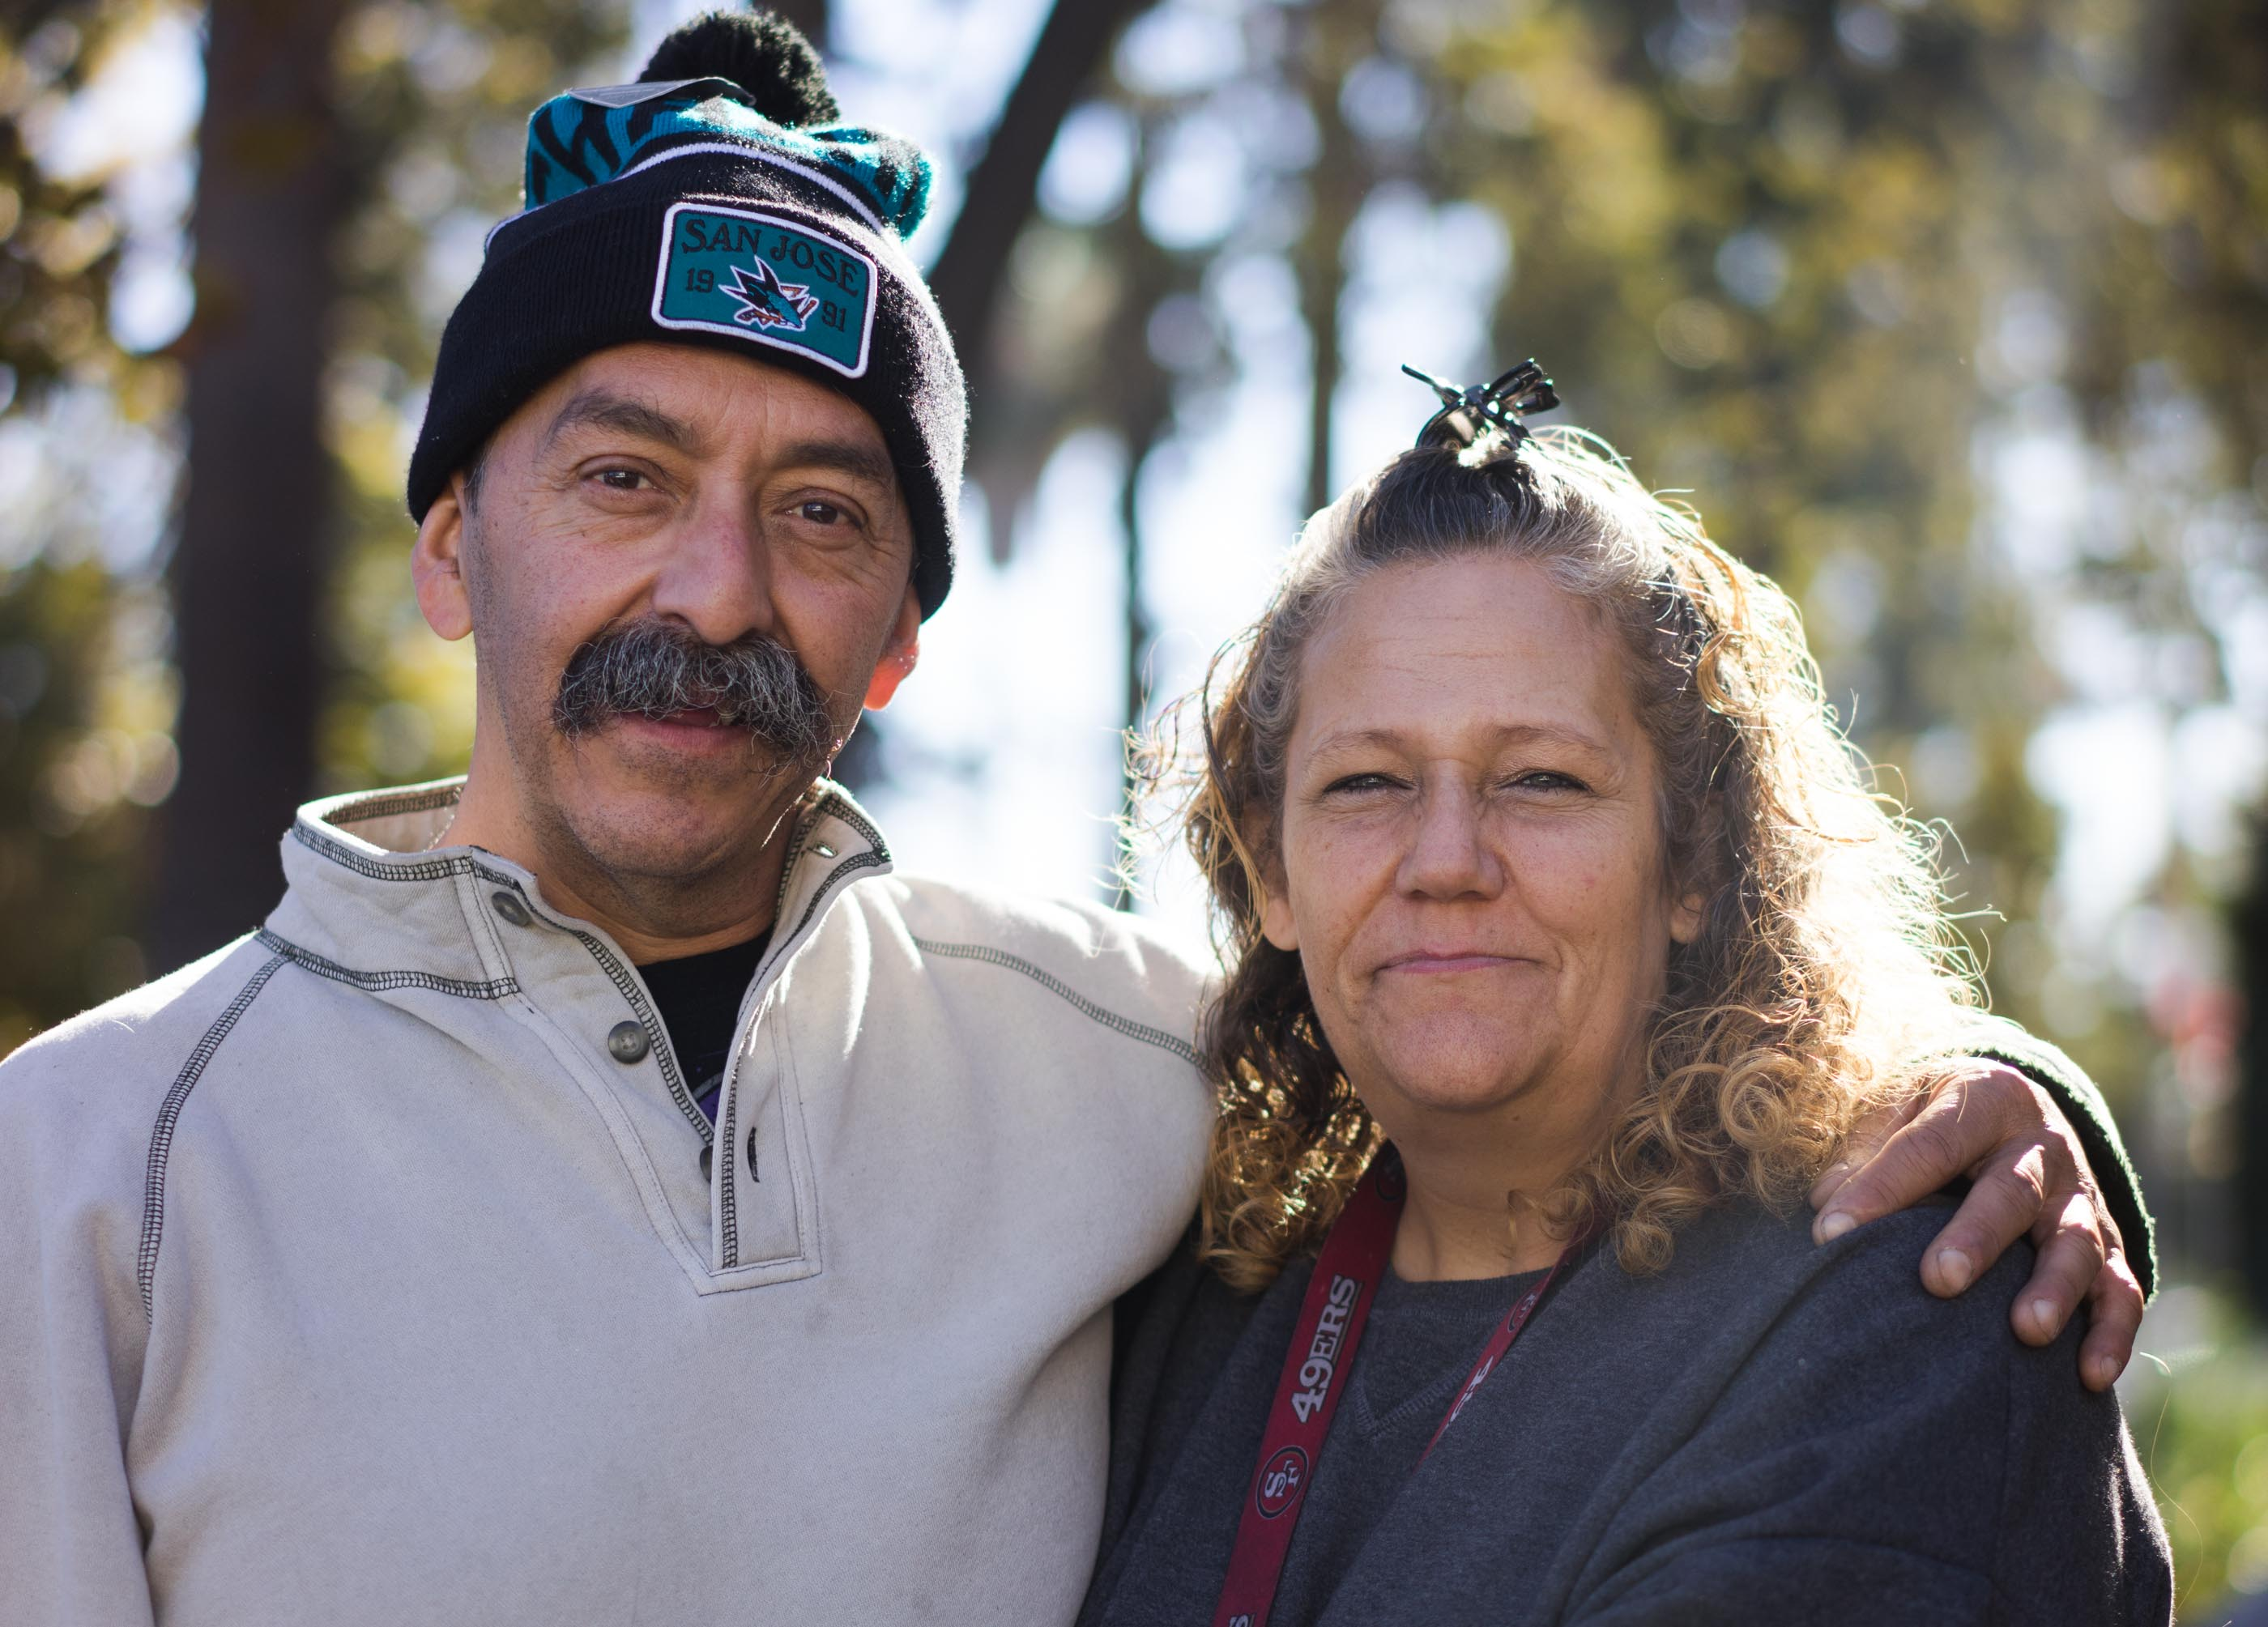 Brian and Andrea Rodriguez have been living on San Jose's streets and creeks for the better part of two years now, keeping each other's spirits up as they fight to get back into paying jobs and permanent housing.